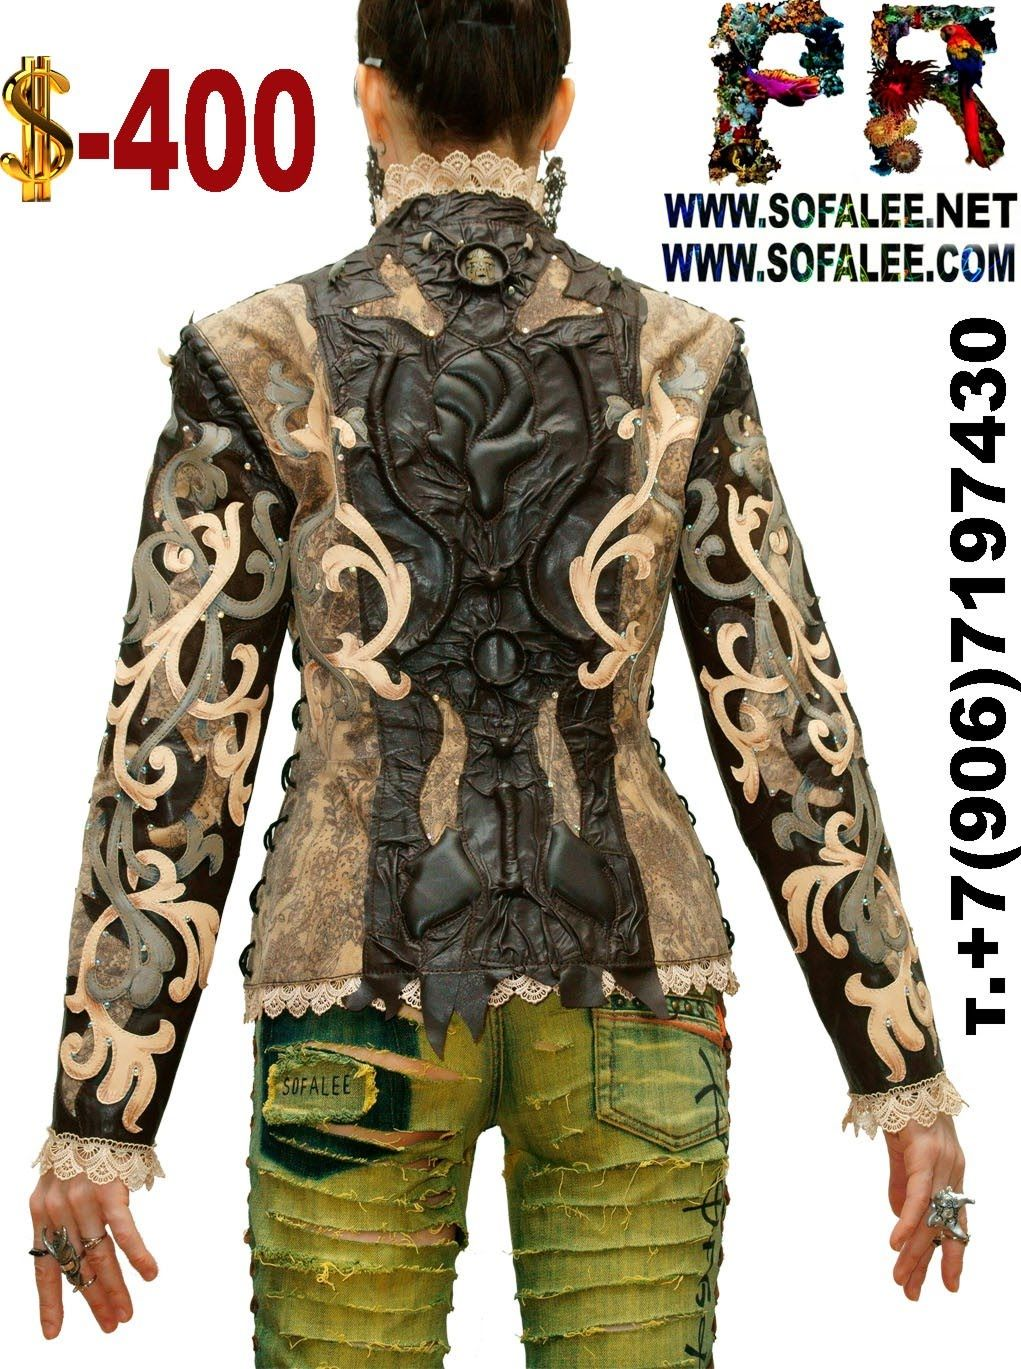 "№165 ""Game of Thrones"" exclusive genuine leather jacket beige brown color. - Exclusive leather jackets&blazers. Women's clothes leather jackets from real python skin,genuine crocodile (alligator) hide skin, suit, coat, vest, dress of leather. Luxury Sheepakin. Mittens&Earmuffs fur red/silver fox, mink. Shop for jackets. Costumes for movie stars, concert, dance, show. Make to order luxury leather clothing."